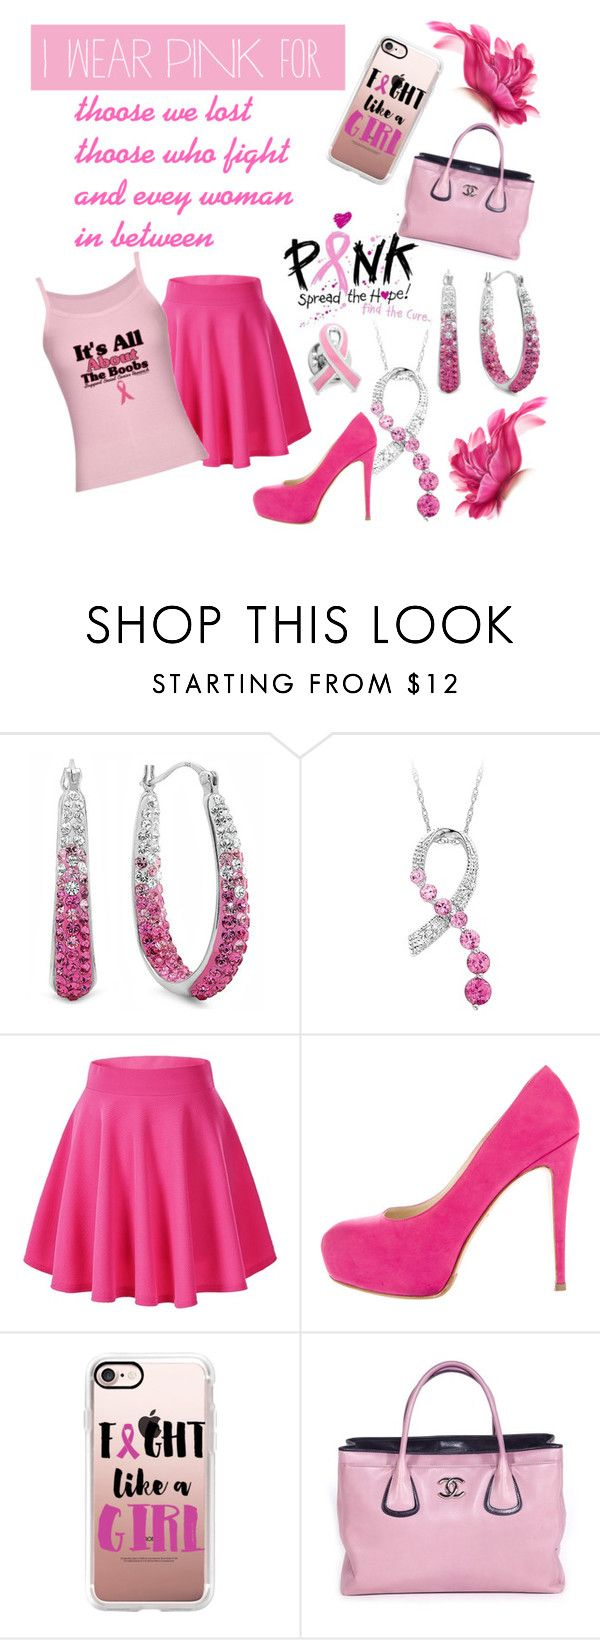 """bca"" by amanda-p-s ❤ liked on Polyvore featuring Amanda Rose Collection, Brian Atwood, Casetify, Chanel, Cufflinks, Inc. and IWearPinkFor"